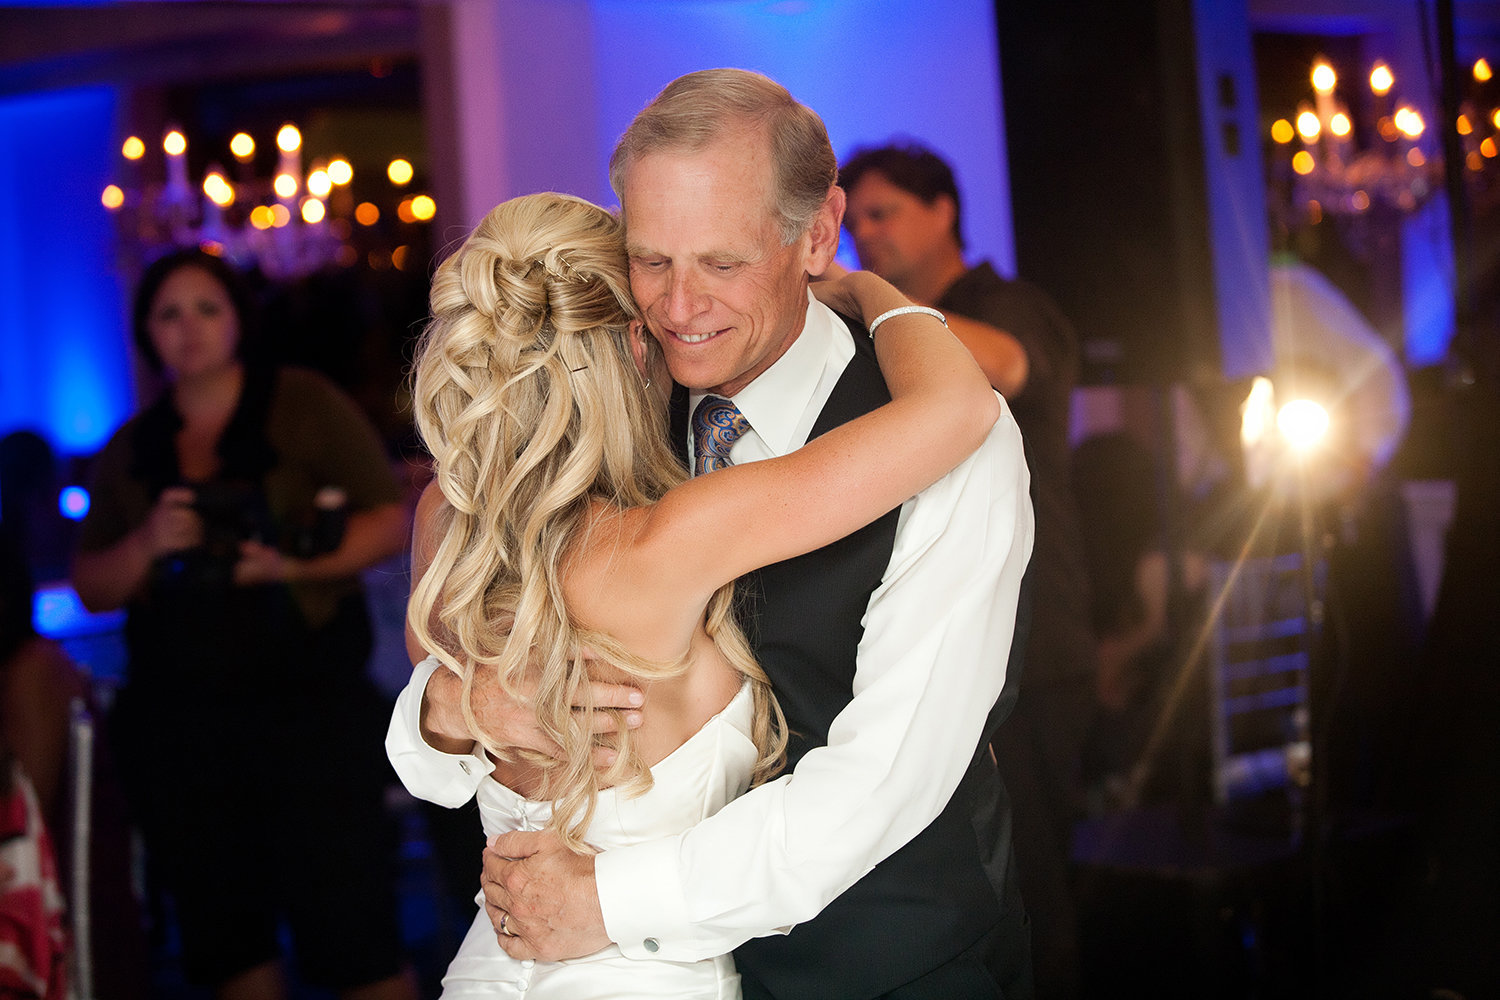 Sweet father daughter dance